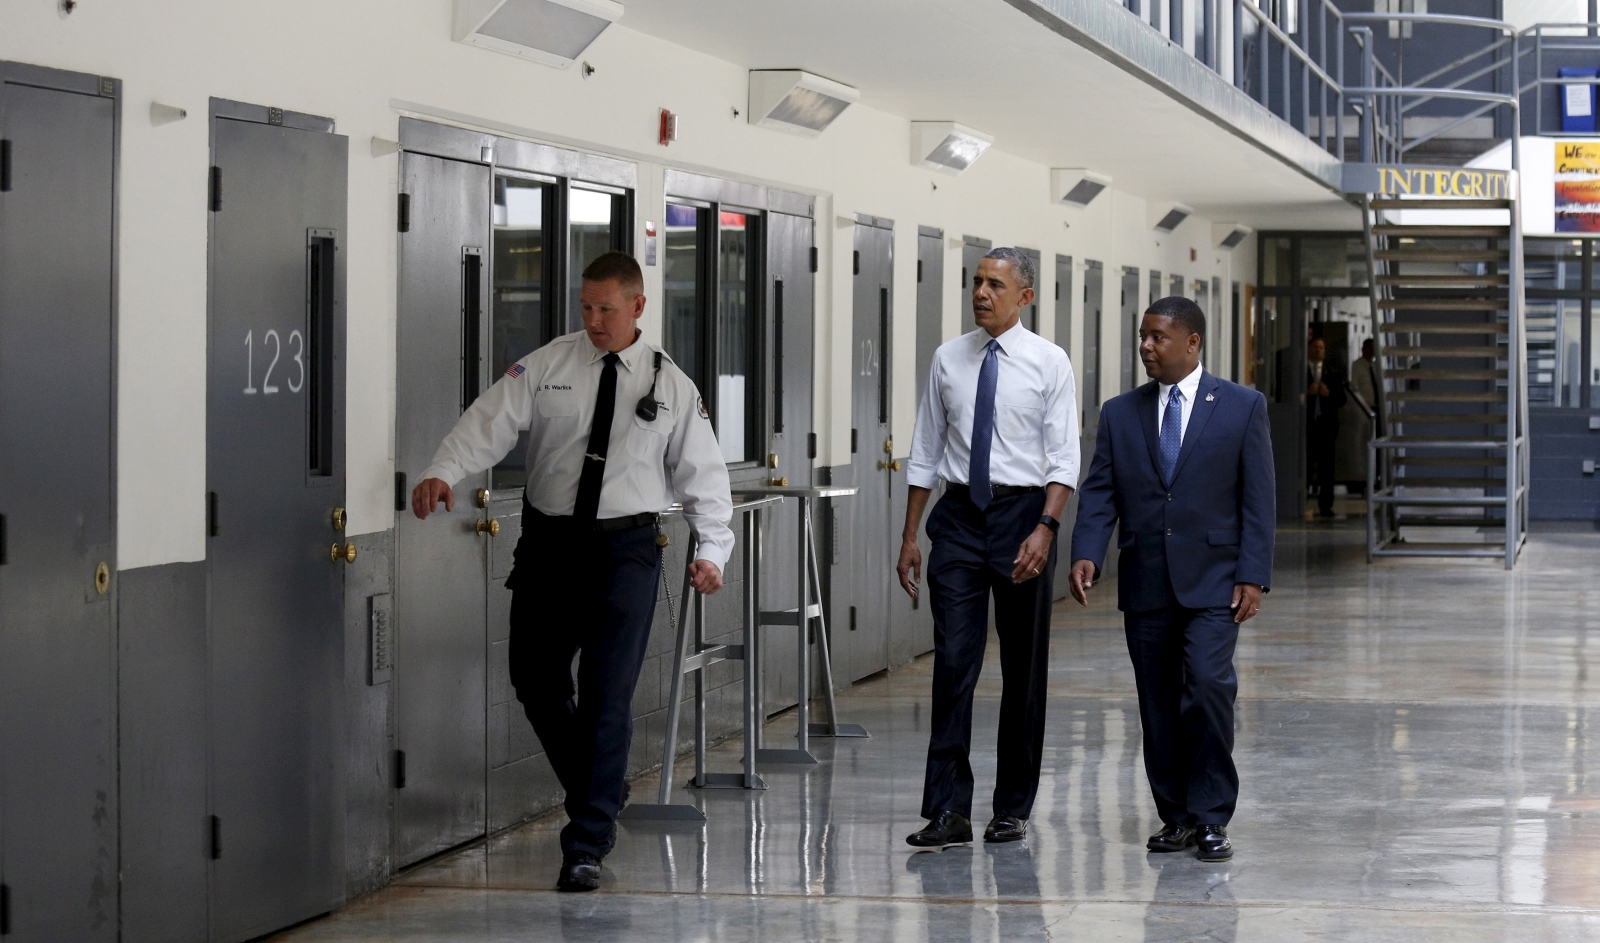 President Obama reduced the sentences of 111 federal prisoners